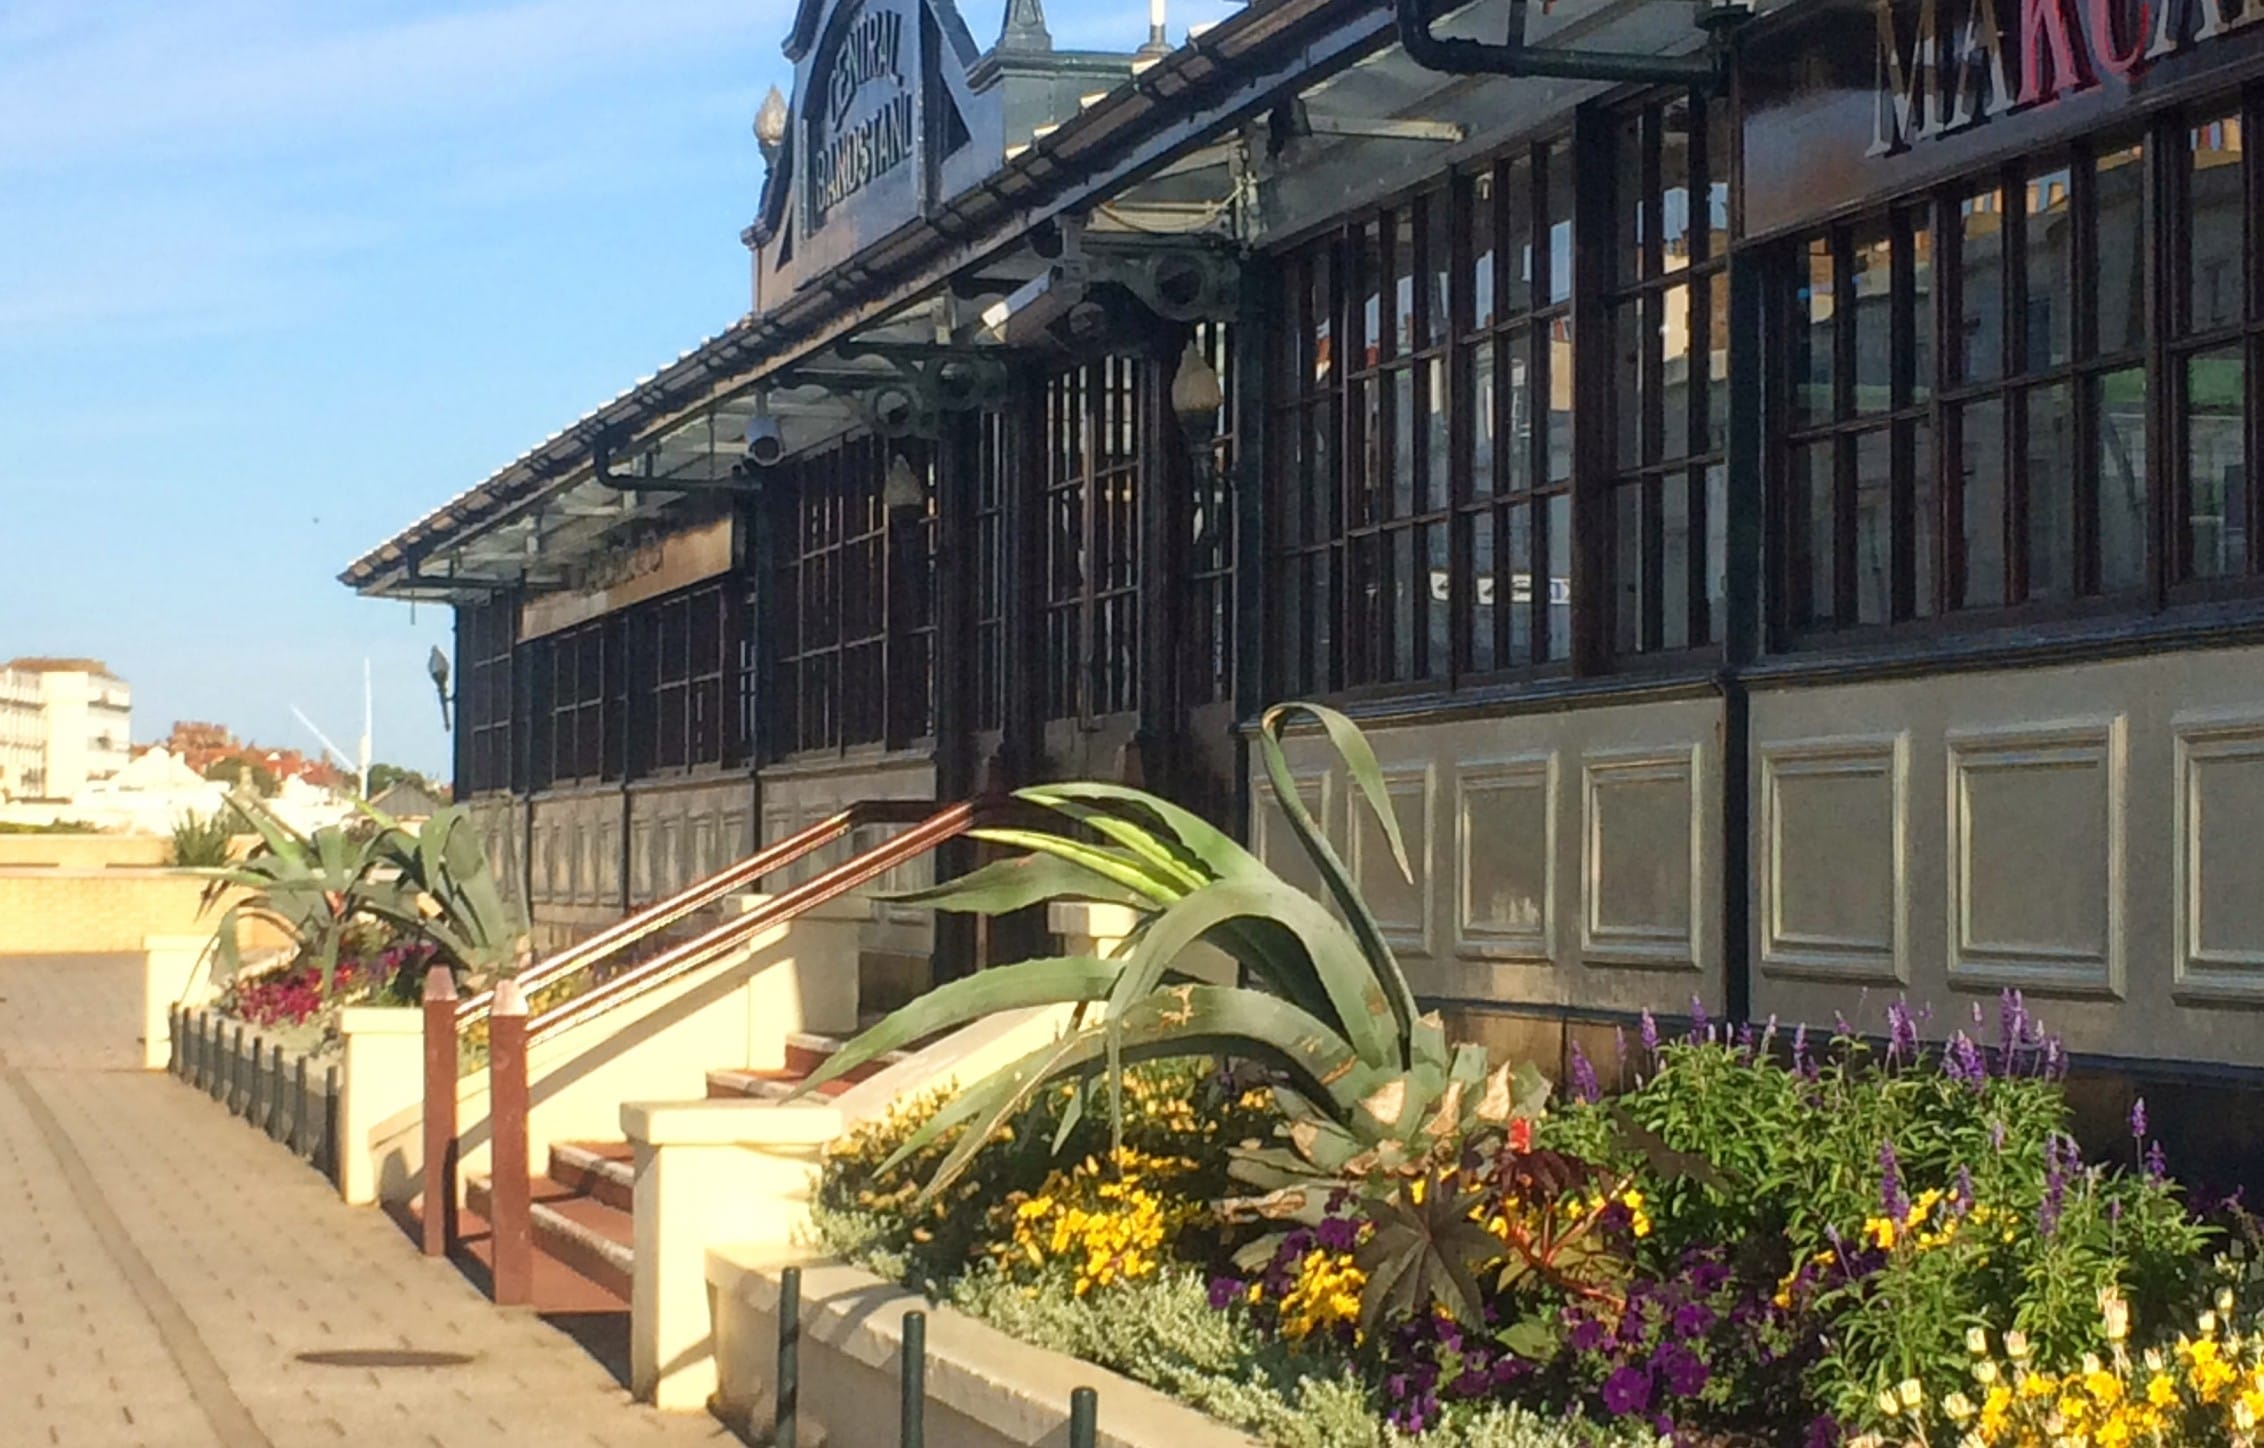 Our wonderfully restored bandstand.